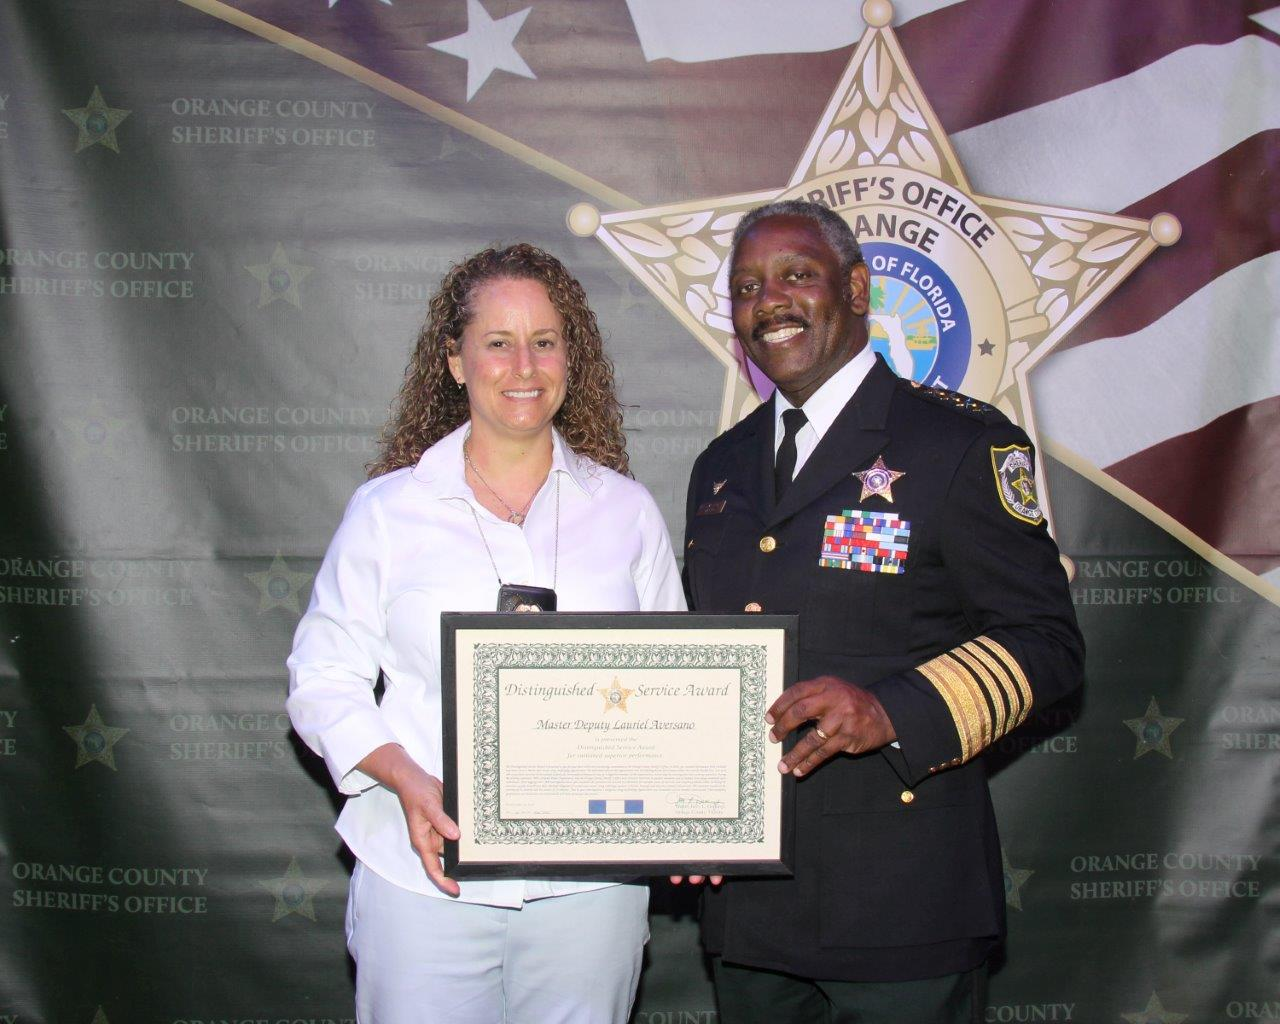 Sheriff Demings presents the Distinguished Service Award to Master Deputy Laurie Aversano